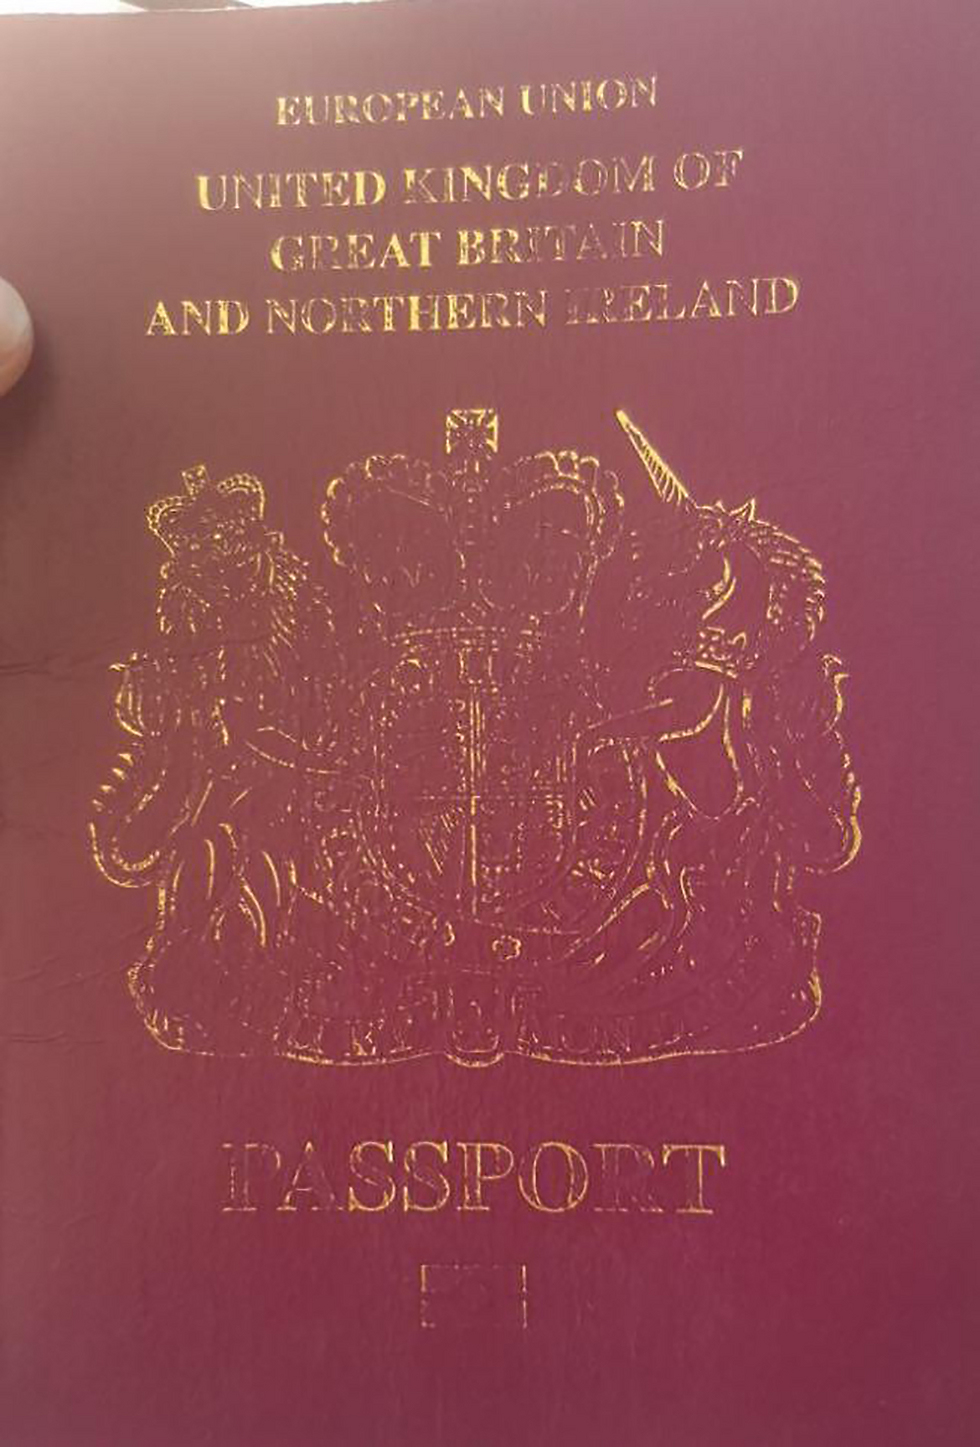 The tourist's passport